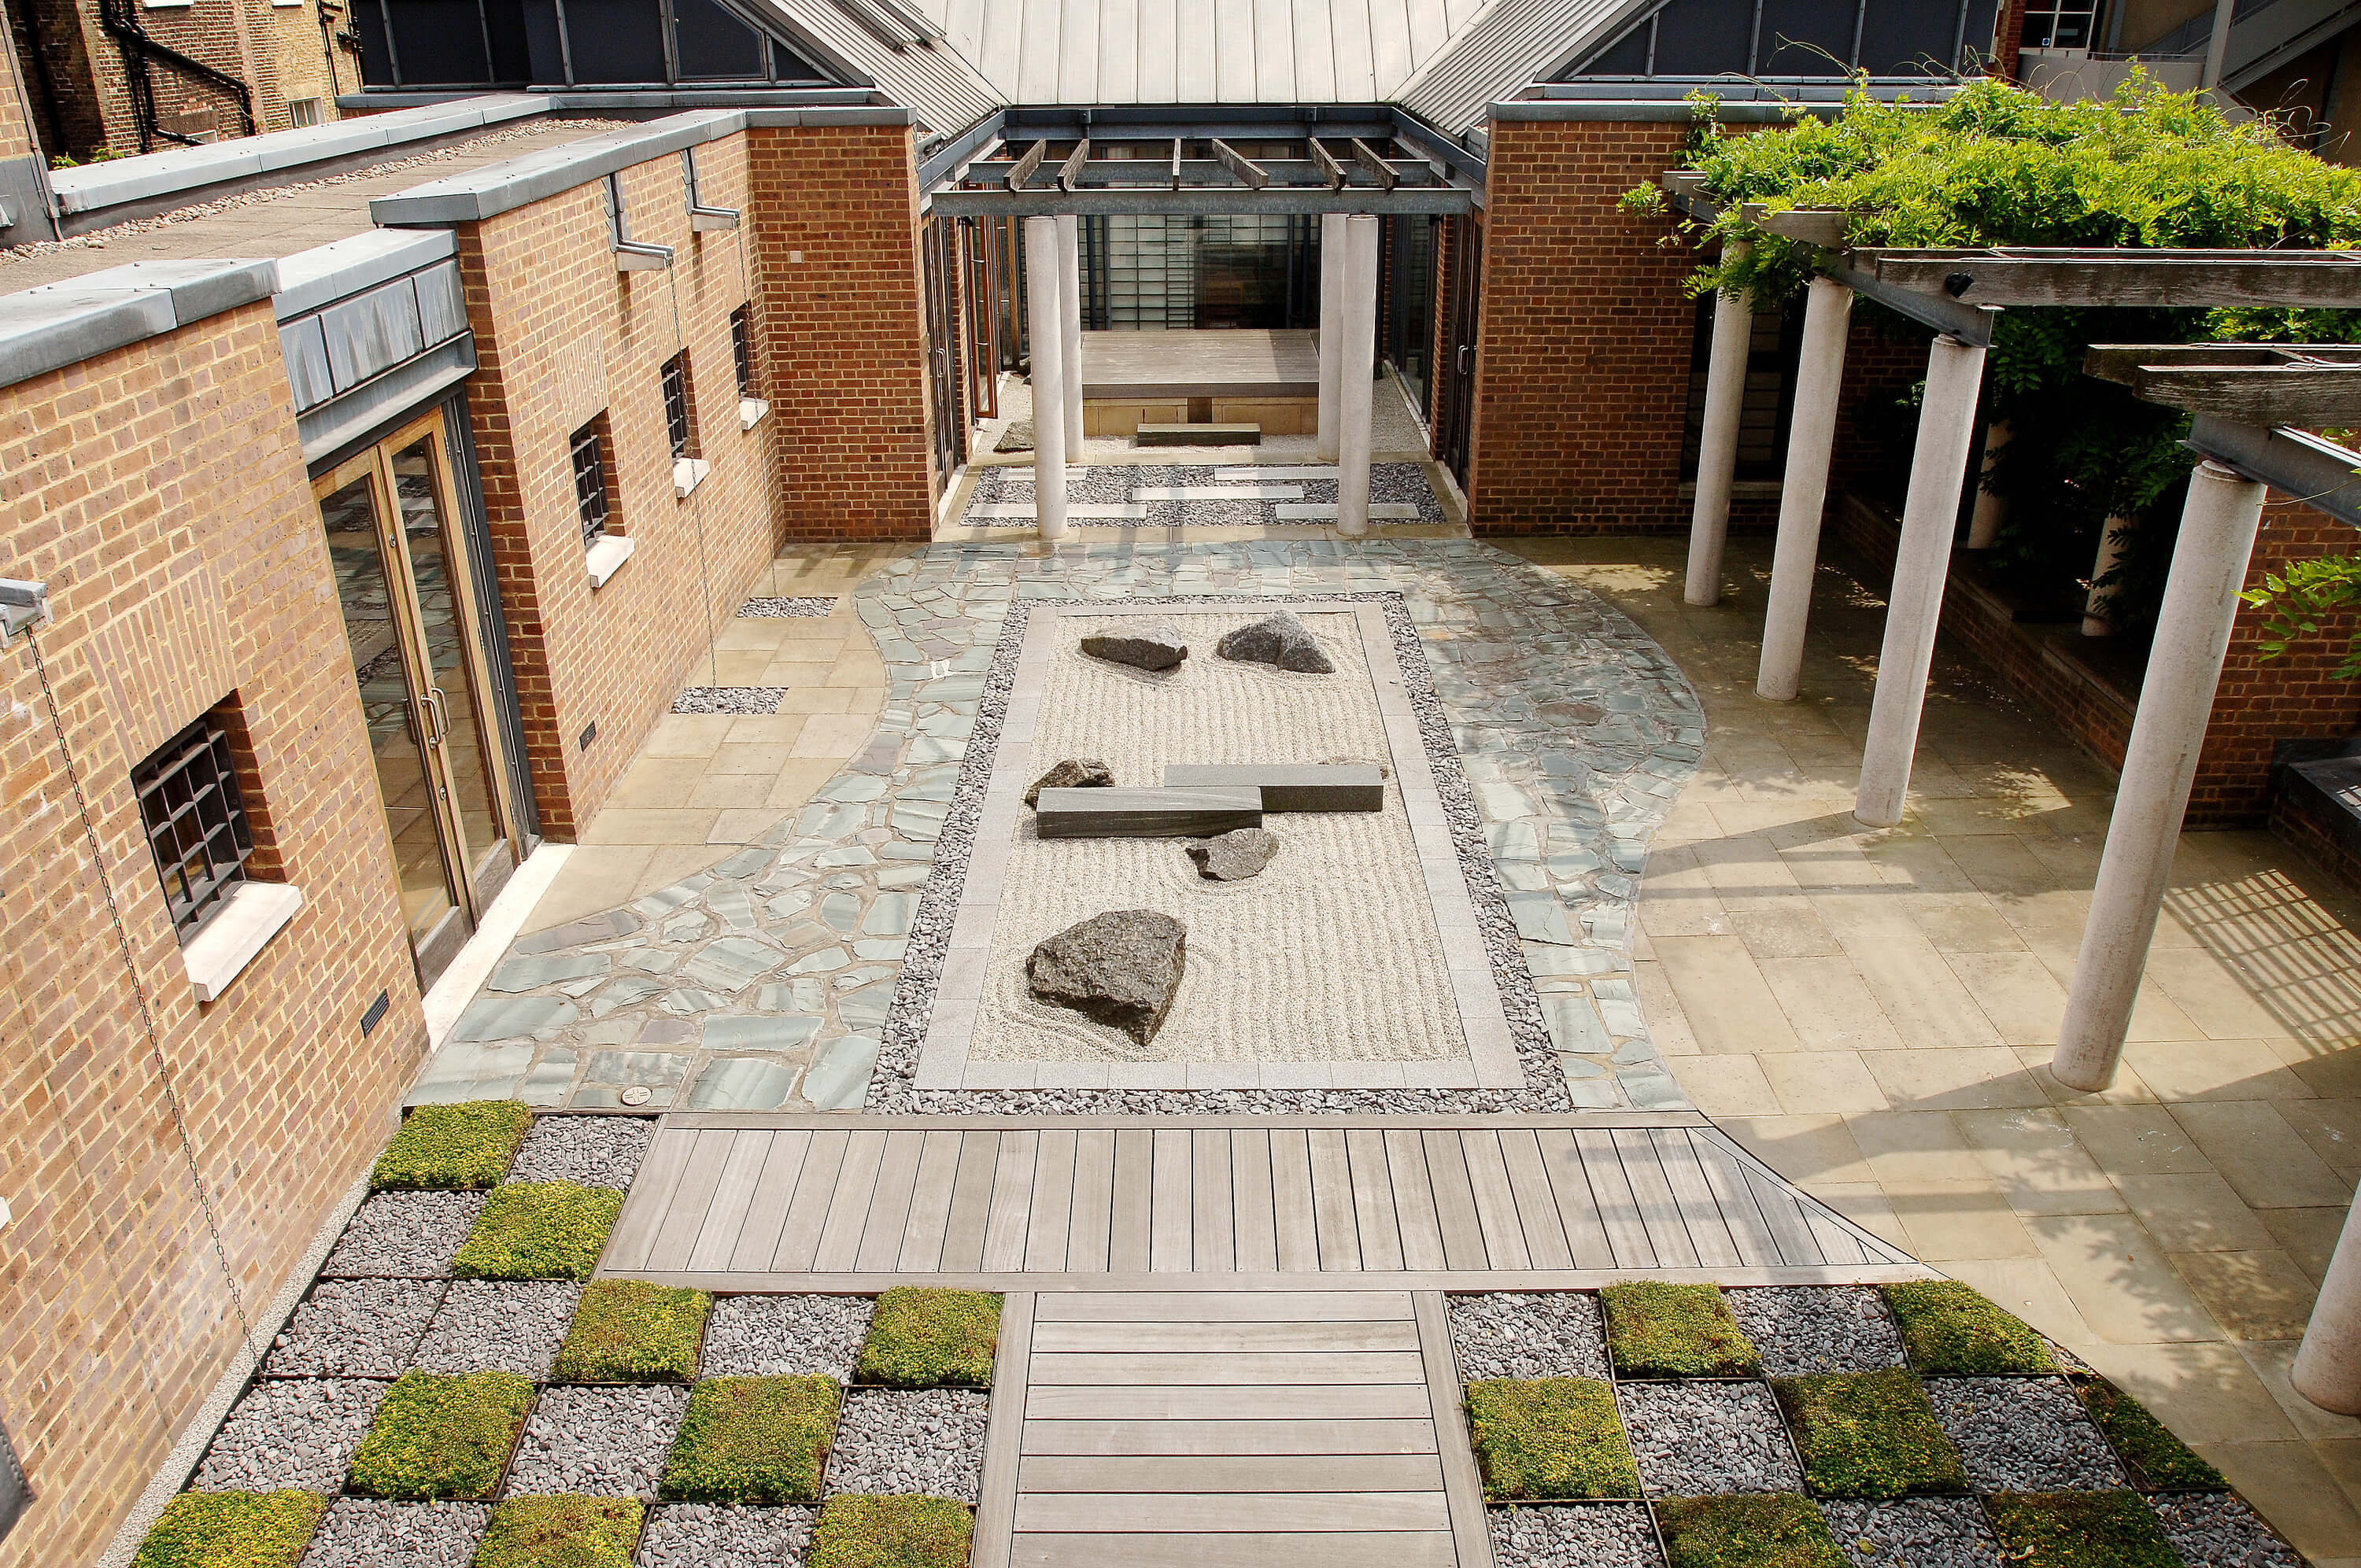 An image of a newly landscaped garden, with fresh tiles laid on the floor.